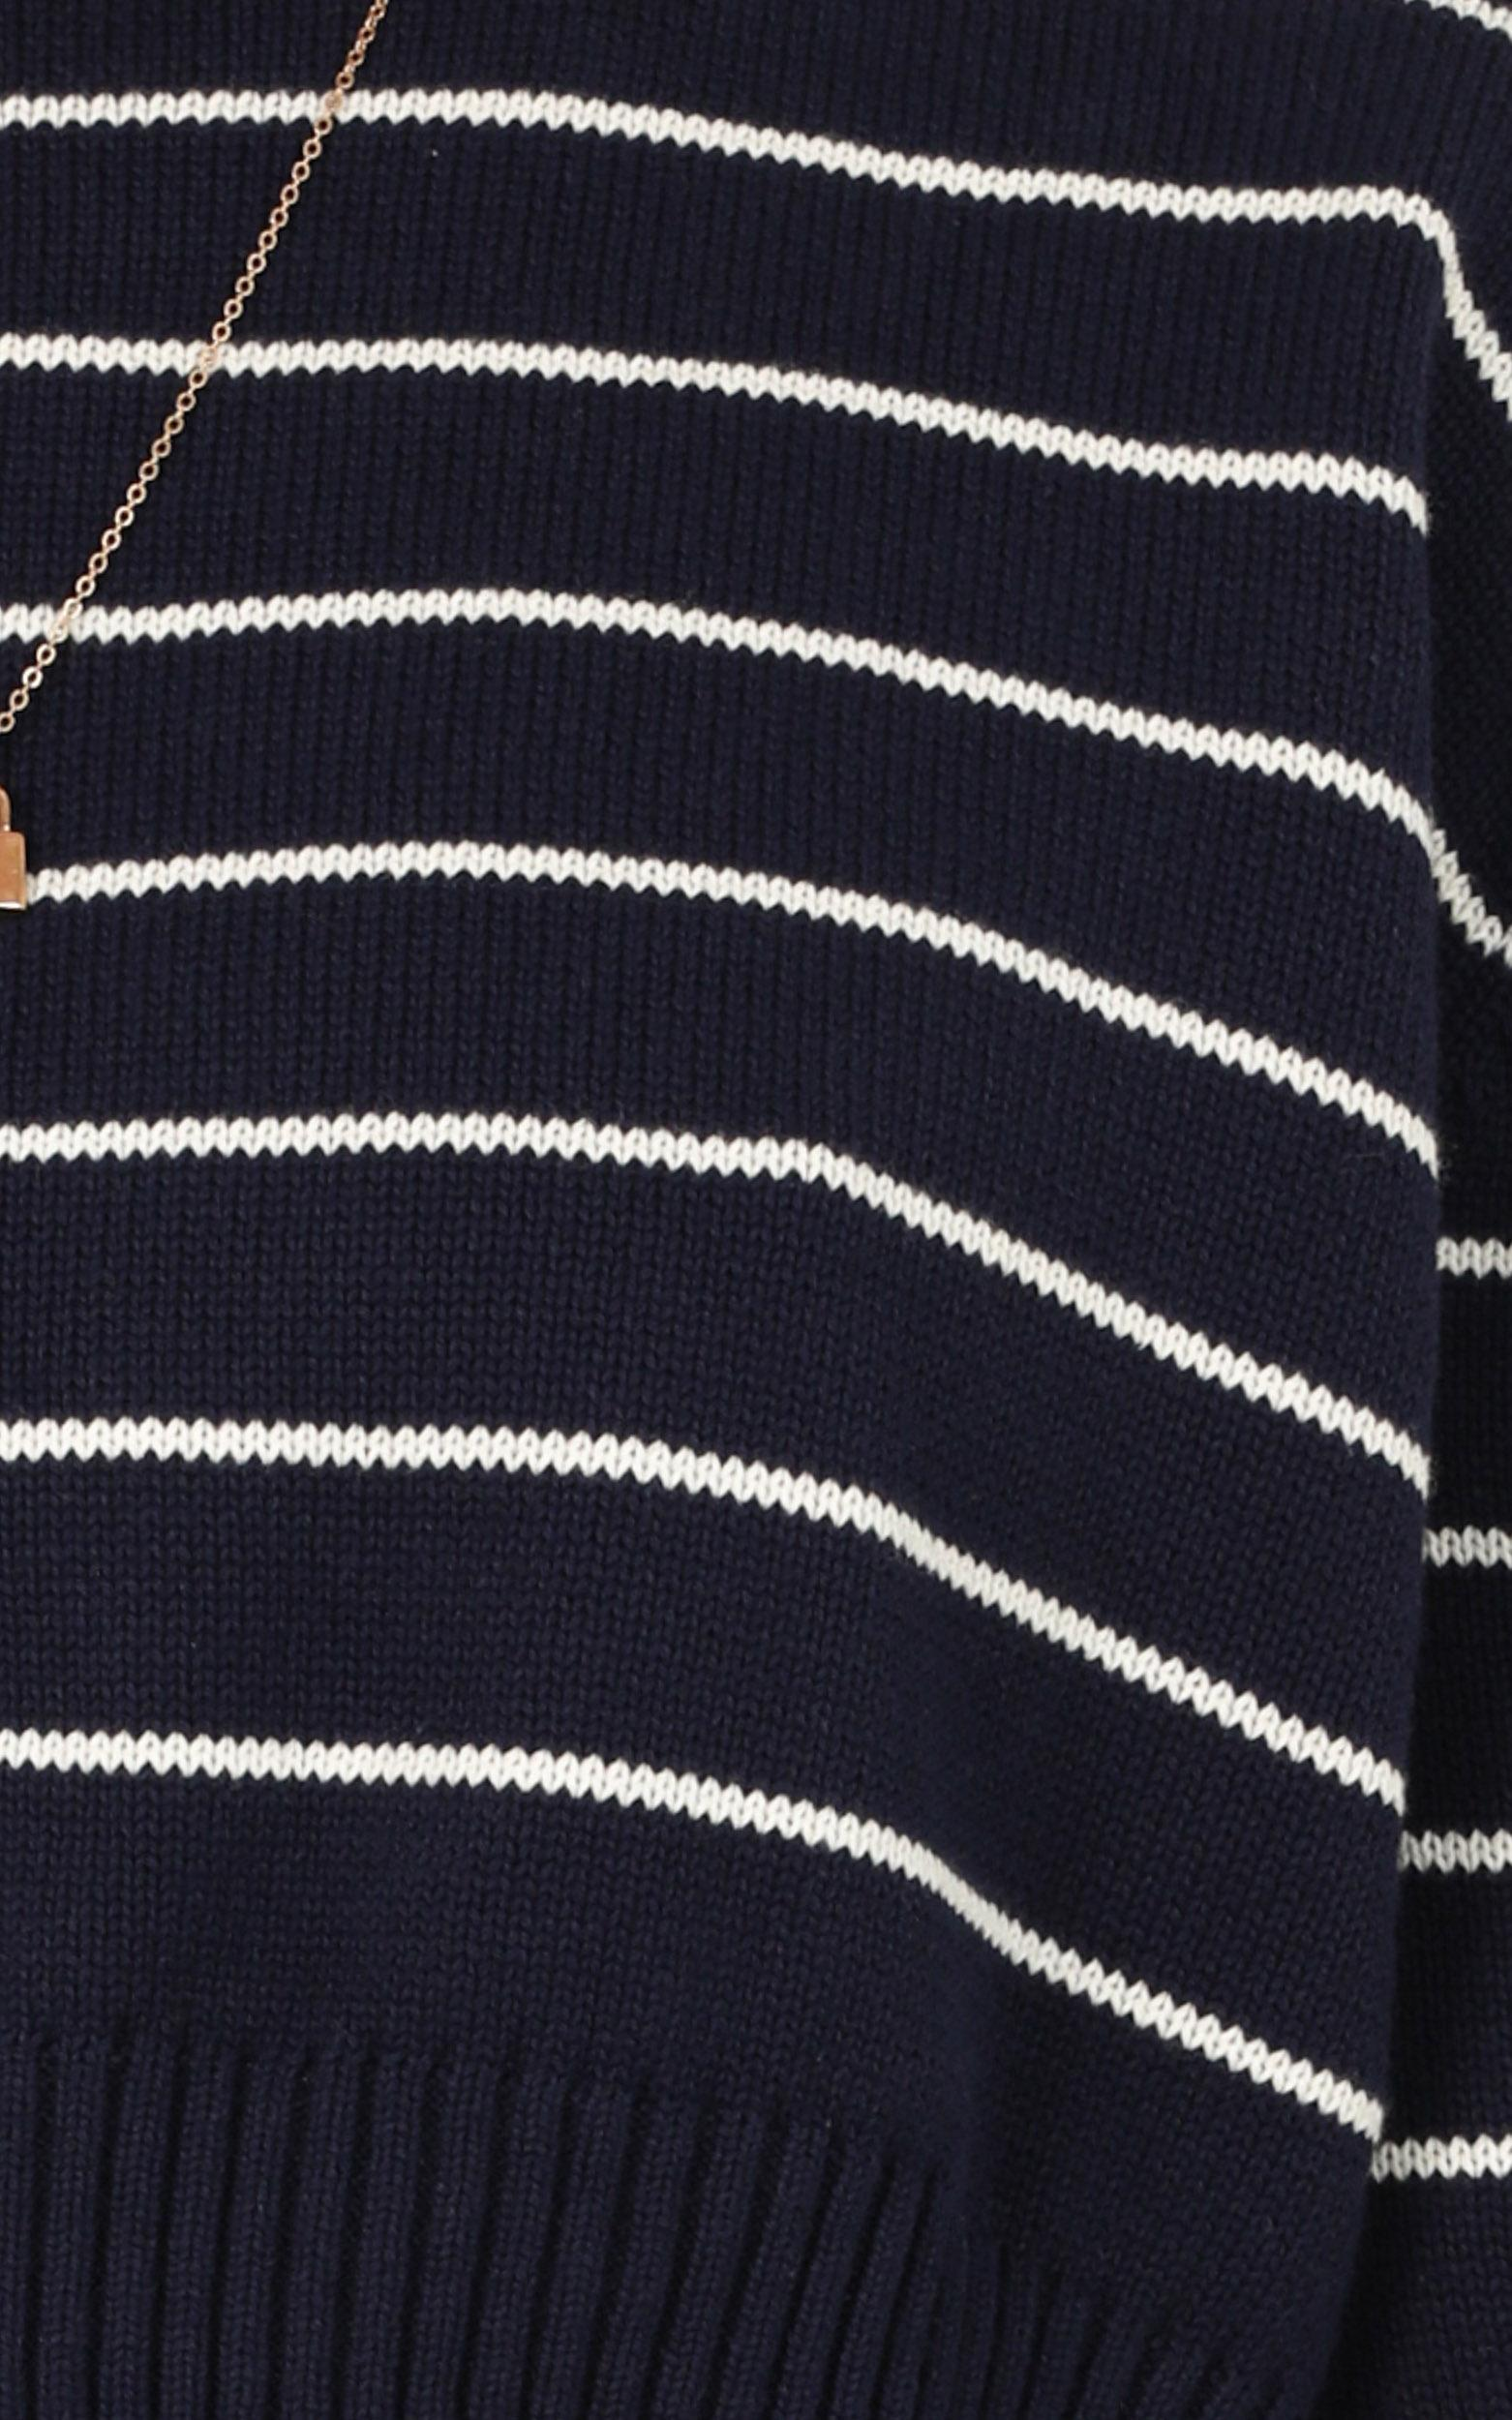 sweeter with love Knit Jumper in navy - 20 (XXXXL), Navy, hi-res image number null